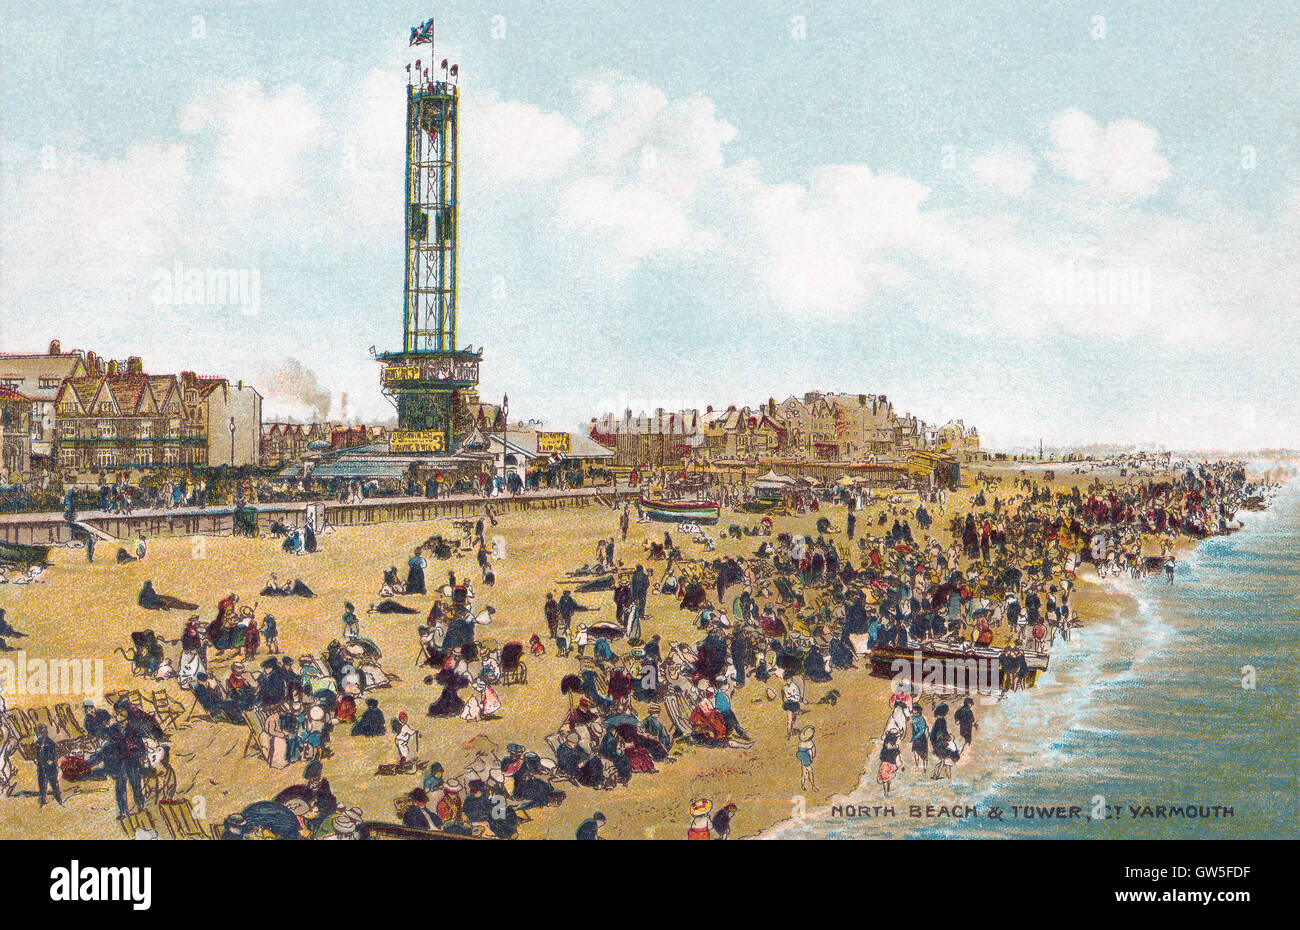 Edwardian postcard of the seaside town of Great Yarmouth, showing the North Beach and Tower. Stock Photo